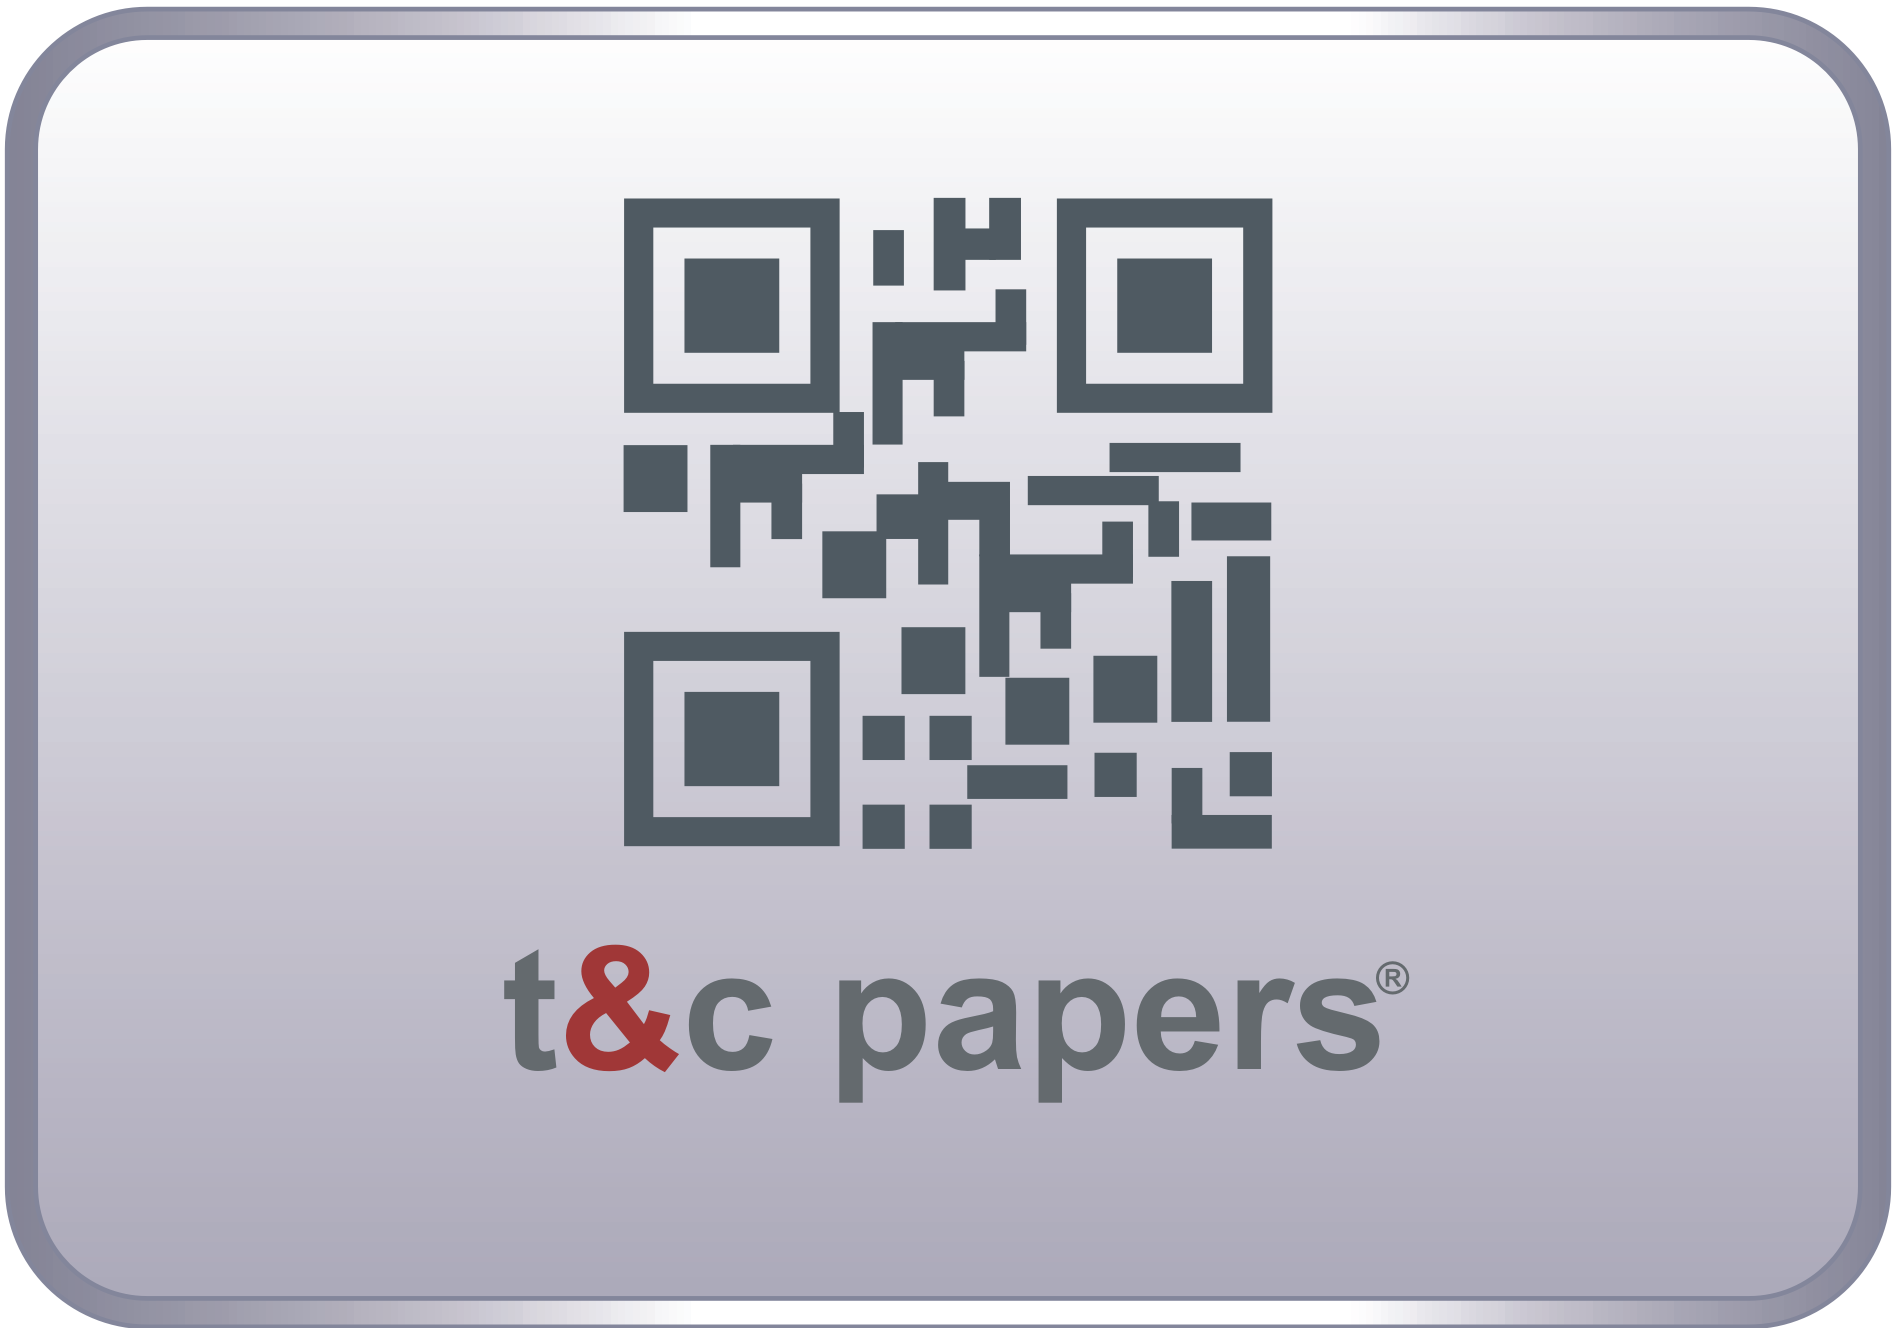 t&c_papers